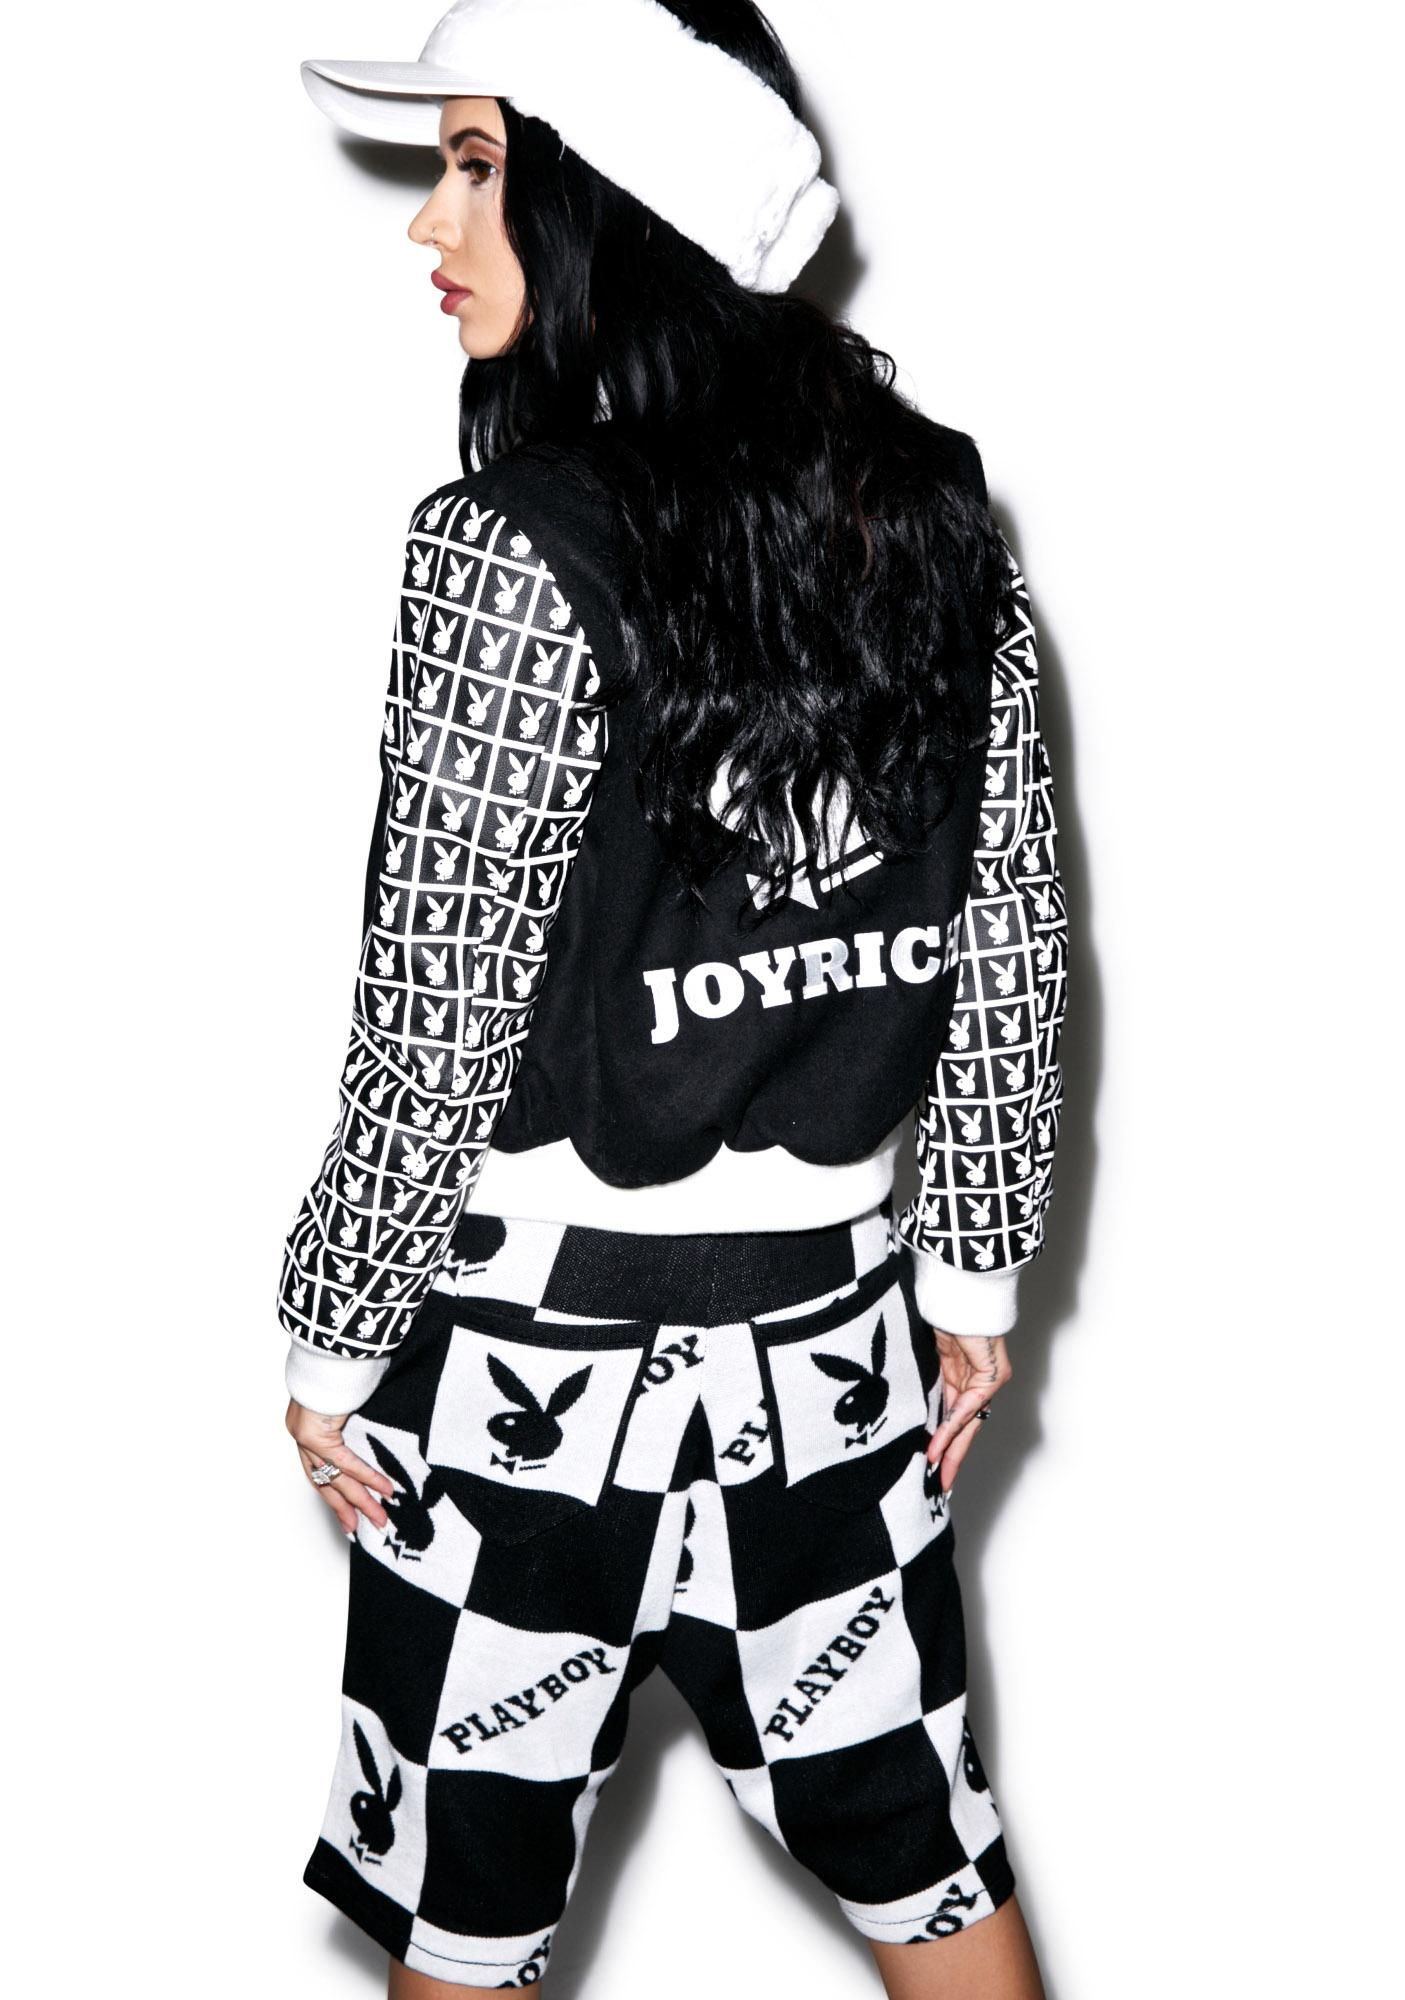 Joyrich X Playboy Checker Knit Shorts